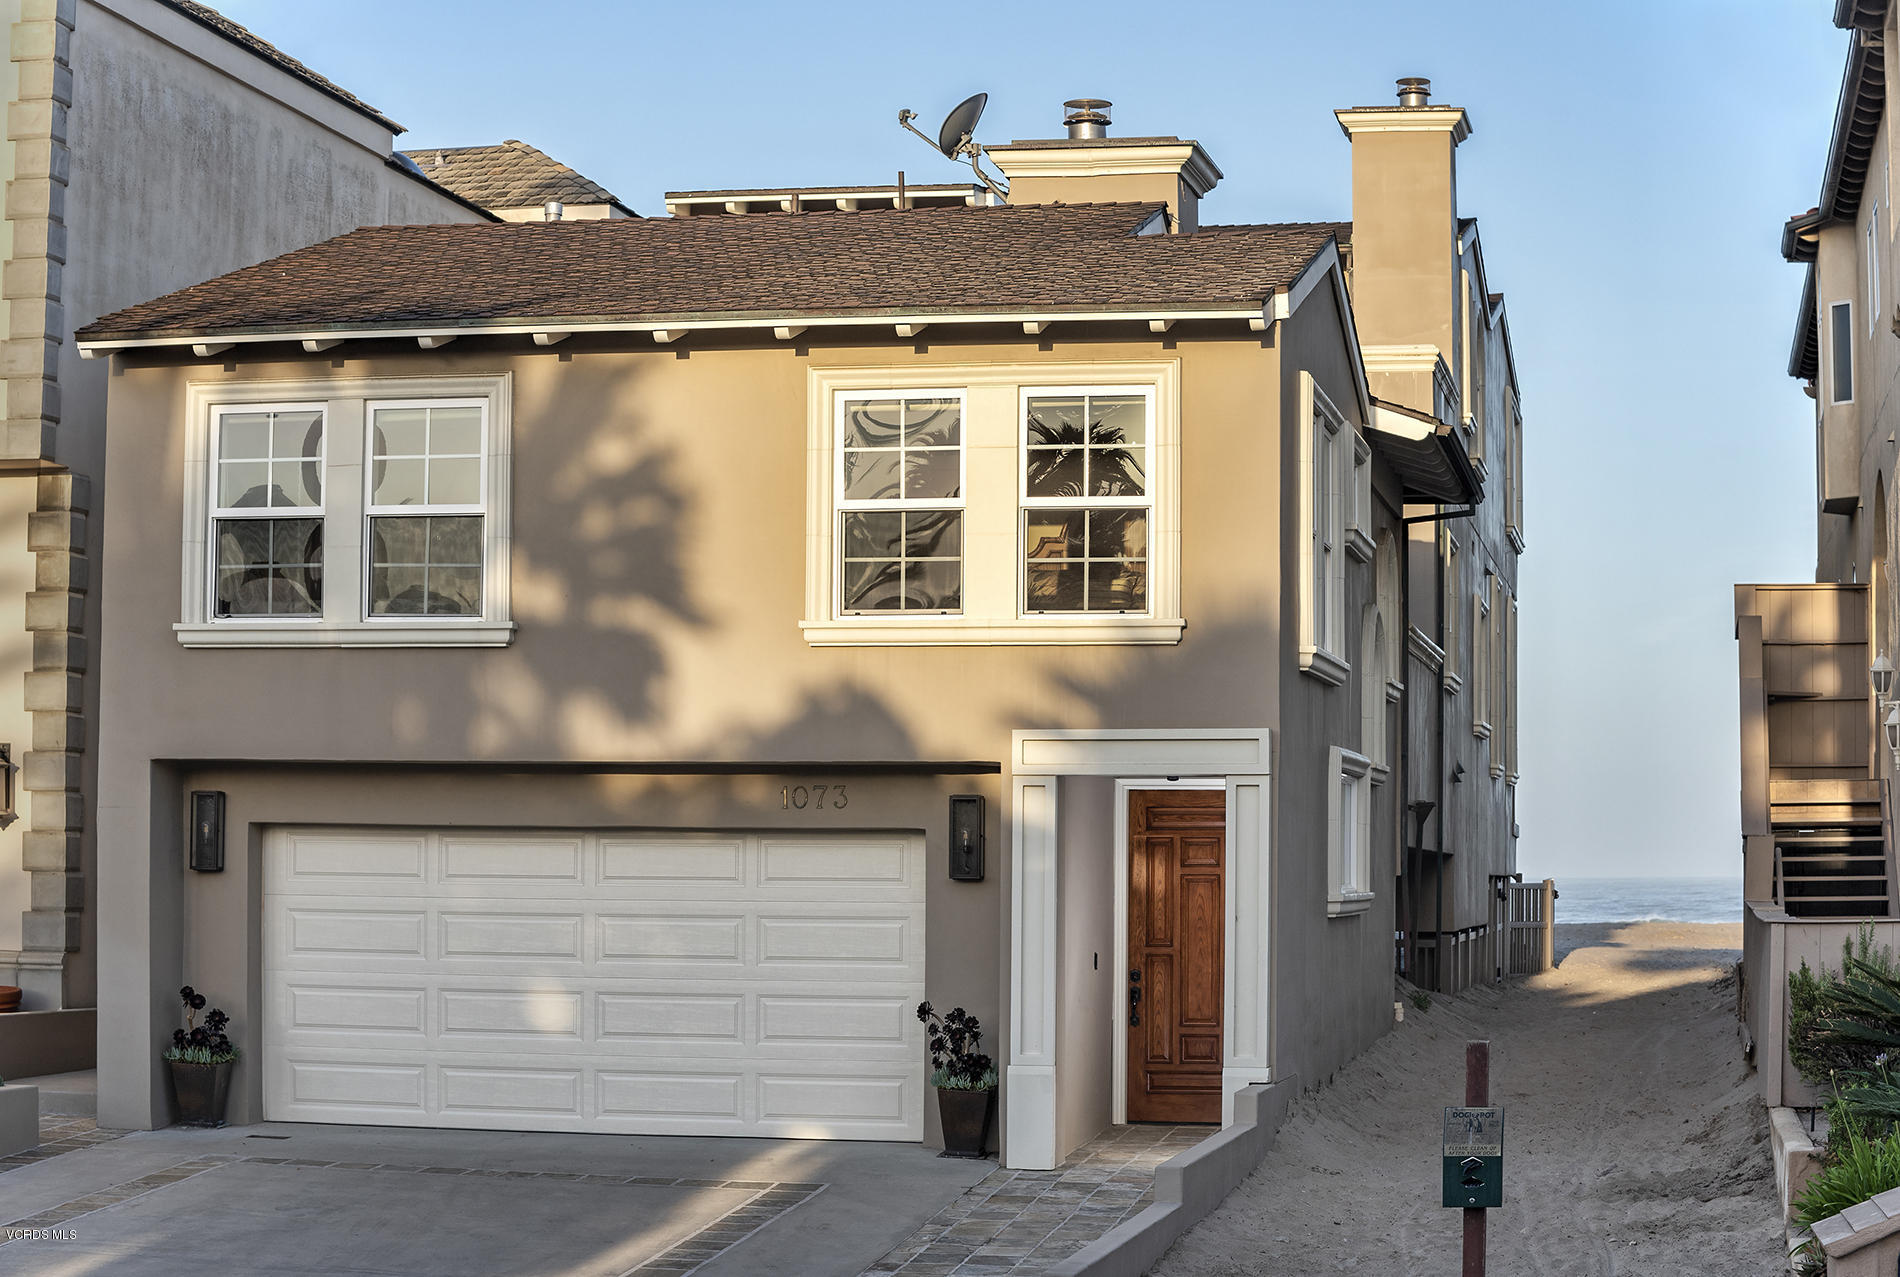 3 bed / 3 full, 1 partial baths Home in Oxnard for $3,995,000